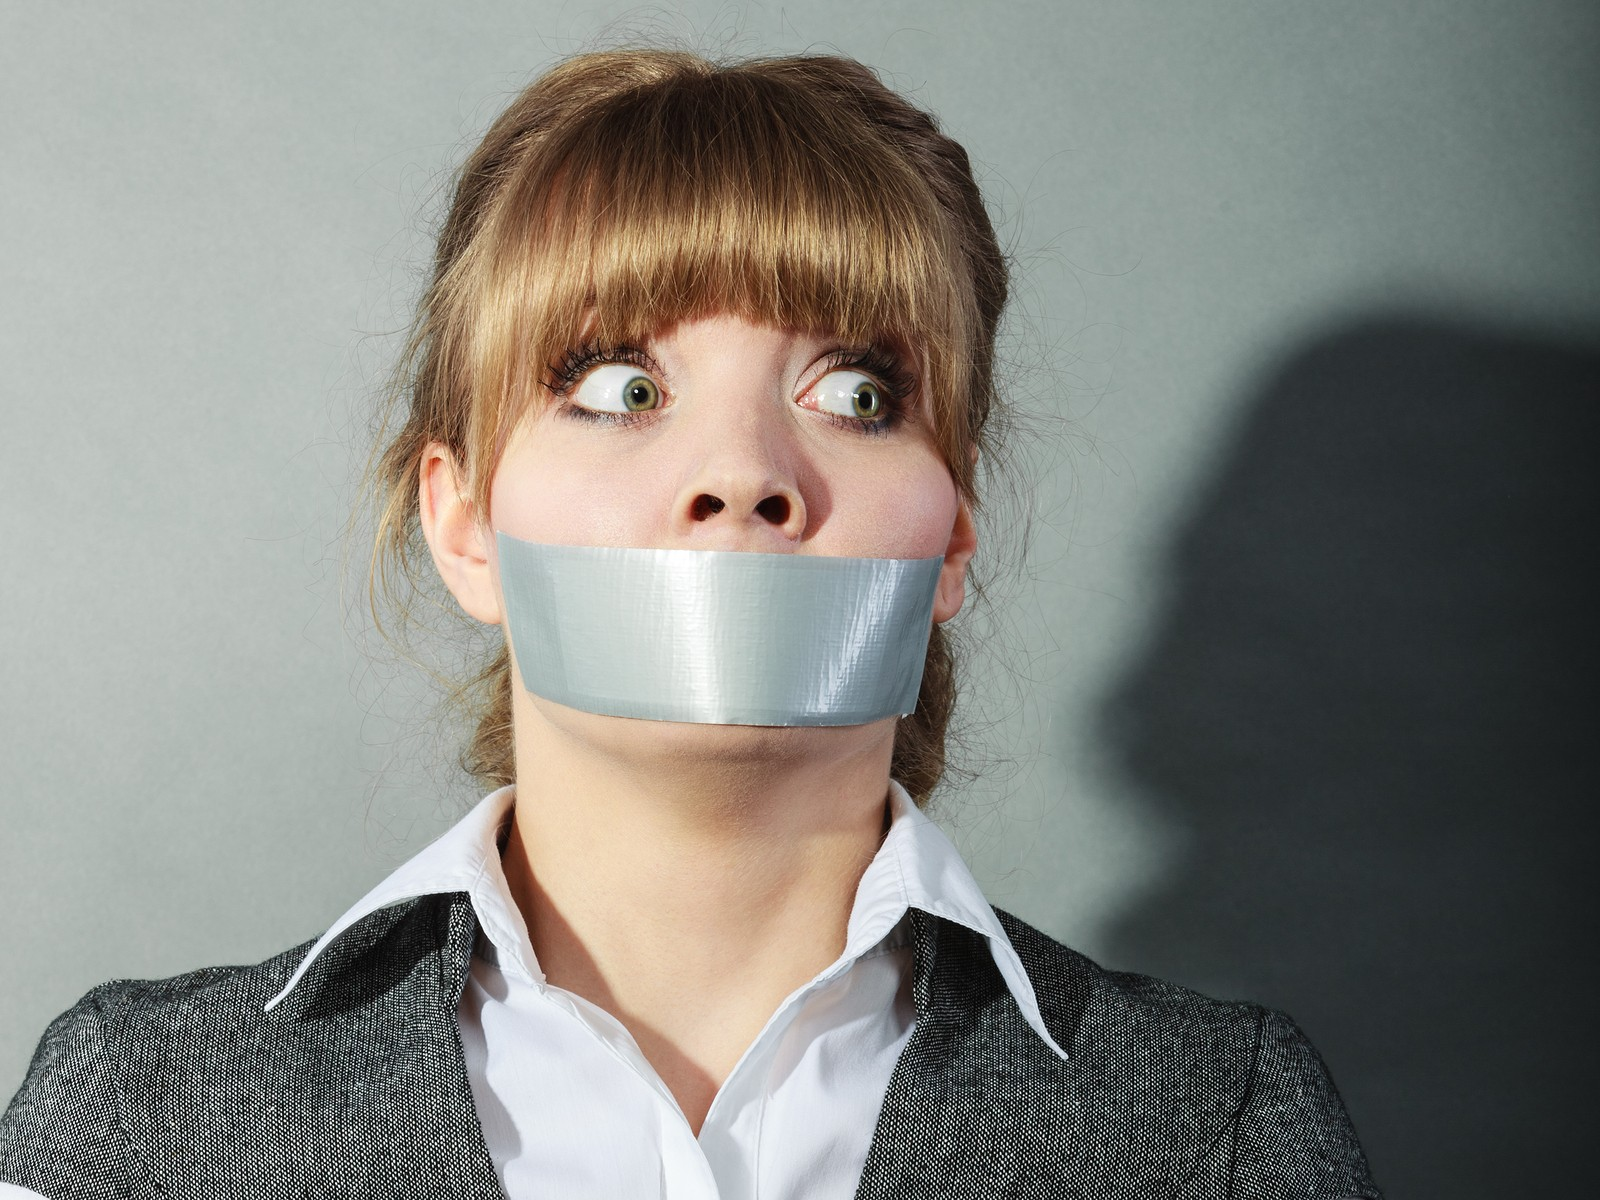 Girl With Mouth Taped Shut Wallpaper Danehy Danehy Tucson Weekly